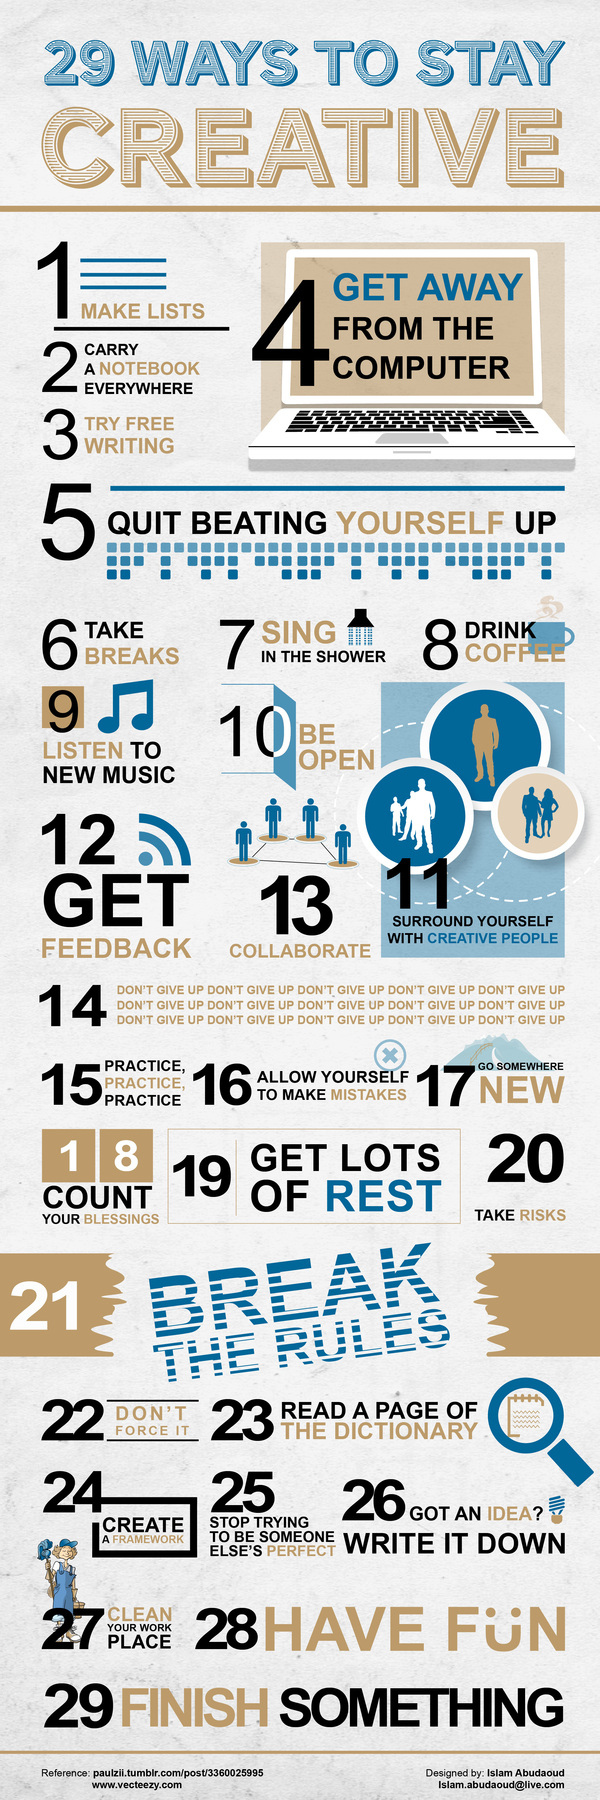 scarlettjen :     29 ways to stay creative. (Bet they had a creative block trying to come up with number 30.)        This.